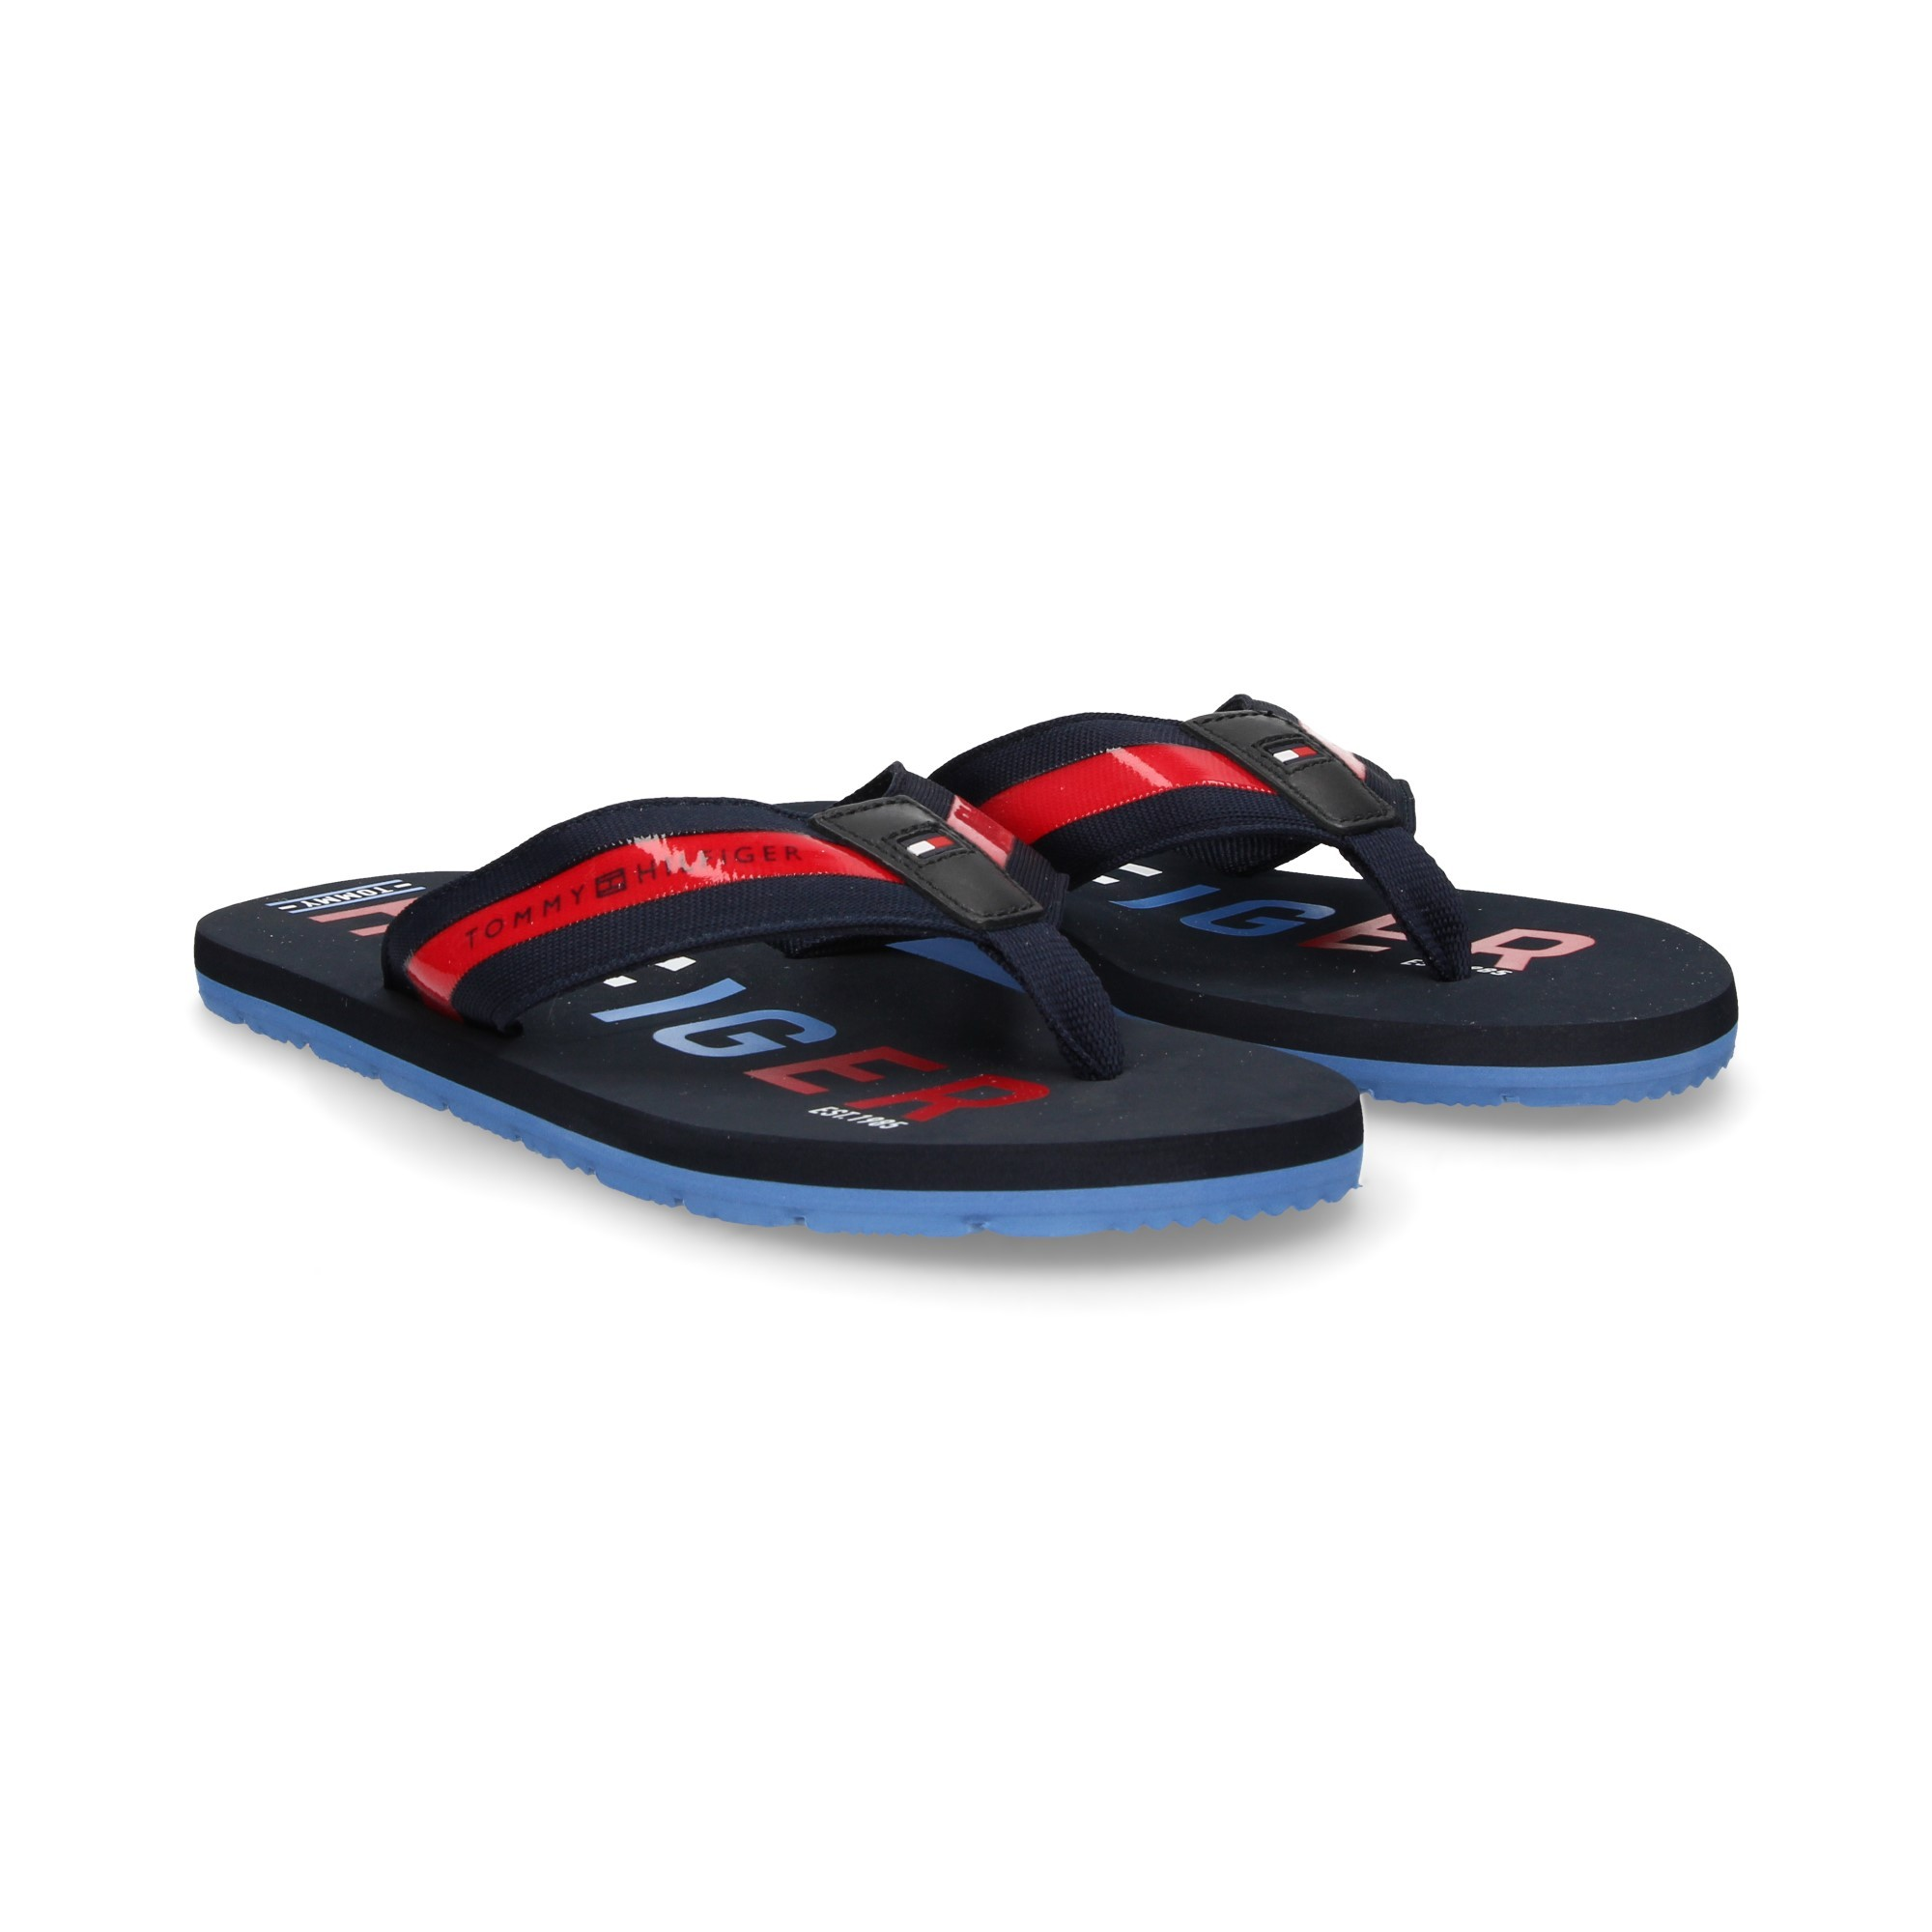 45cc21836f895 TOMMY HILFIGER Men s Flip Flops FM01928 403 MIDNIGHT